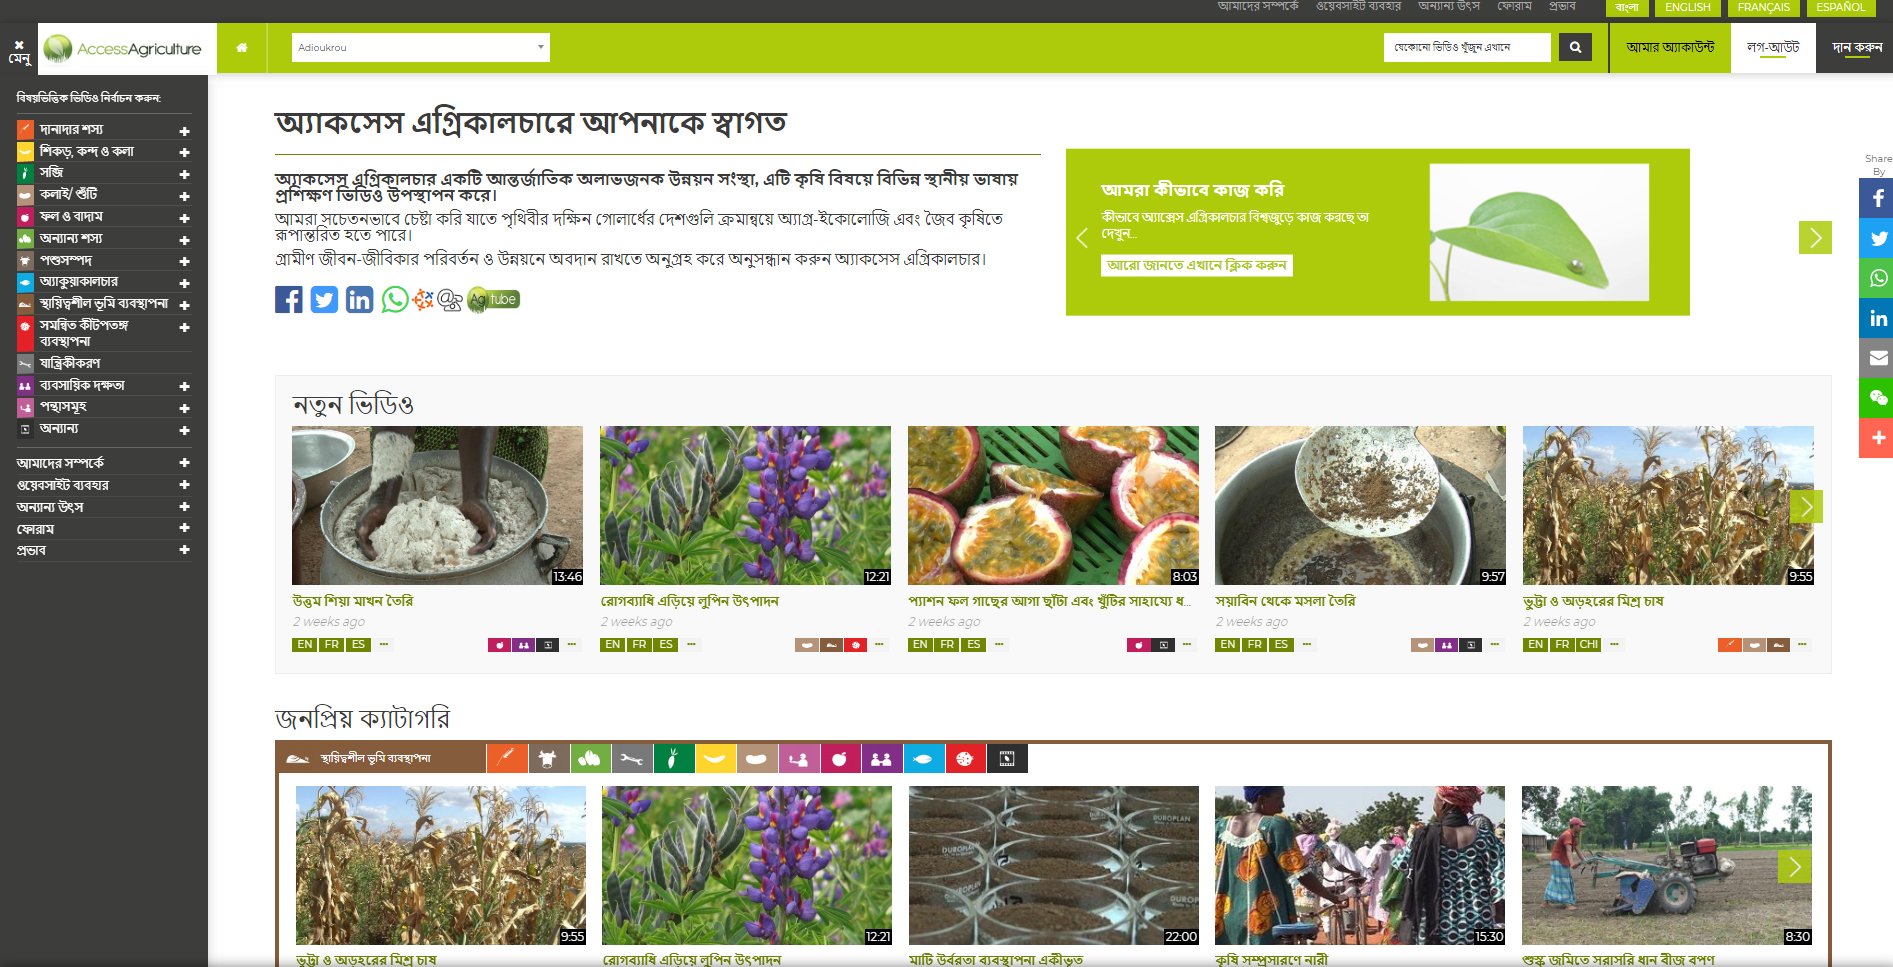 Access Agriculture Bangla website